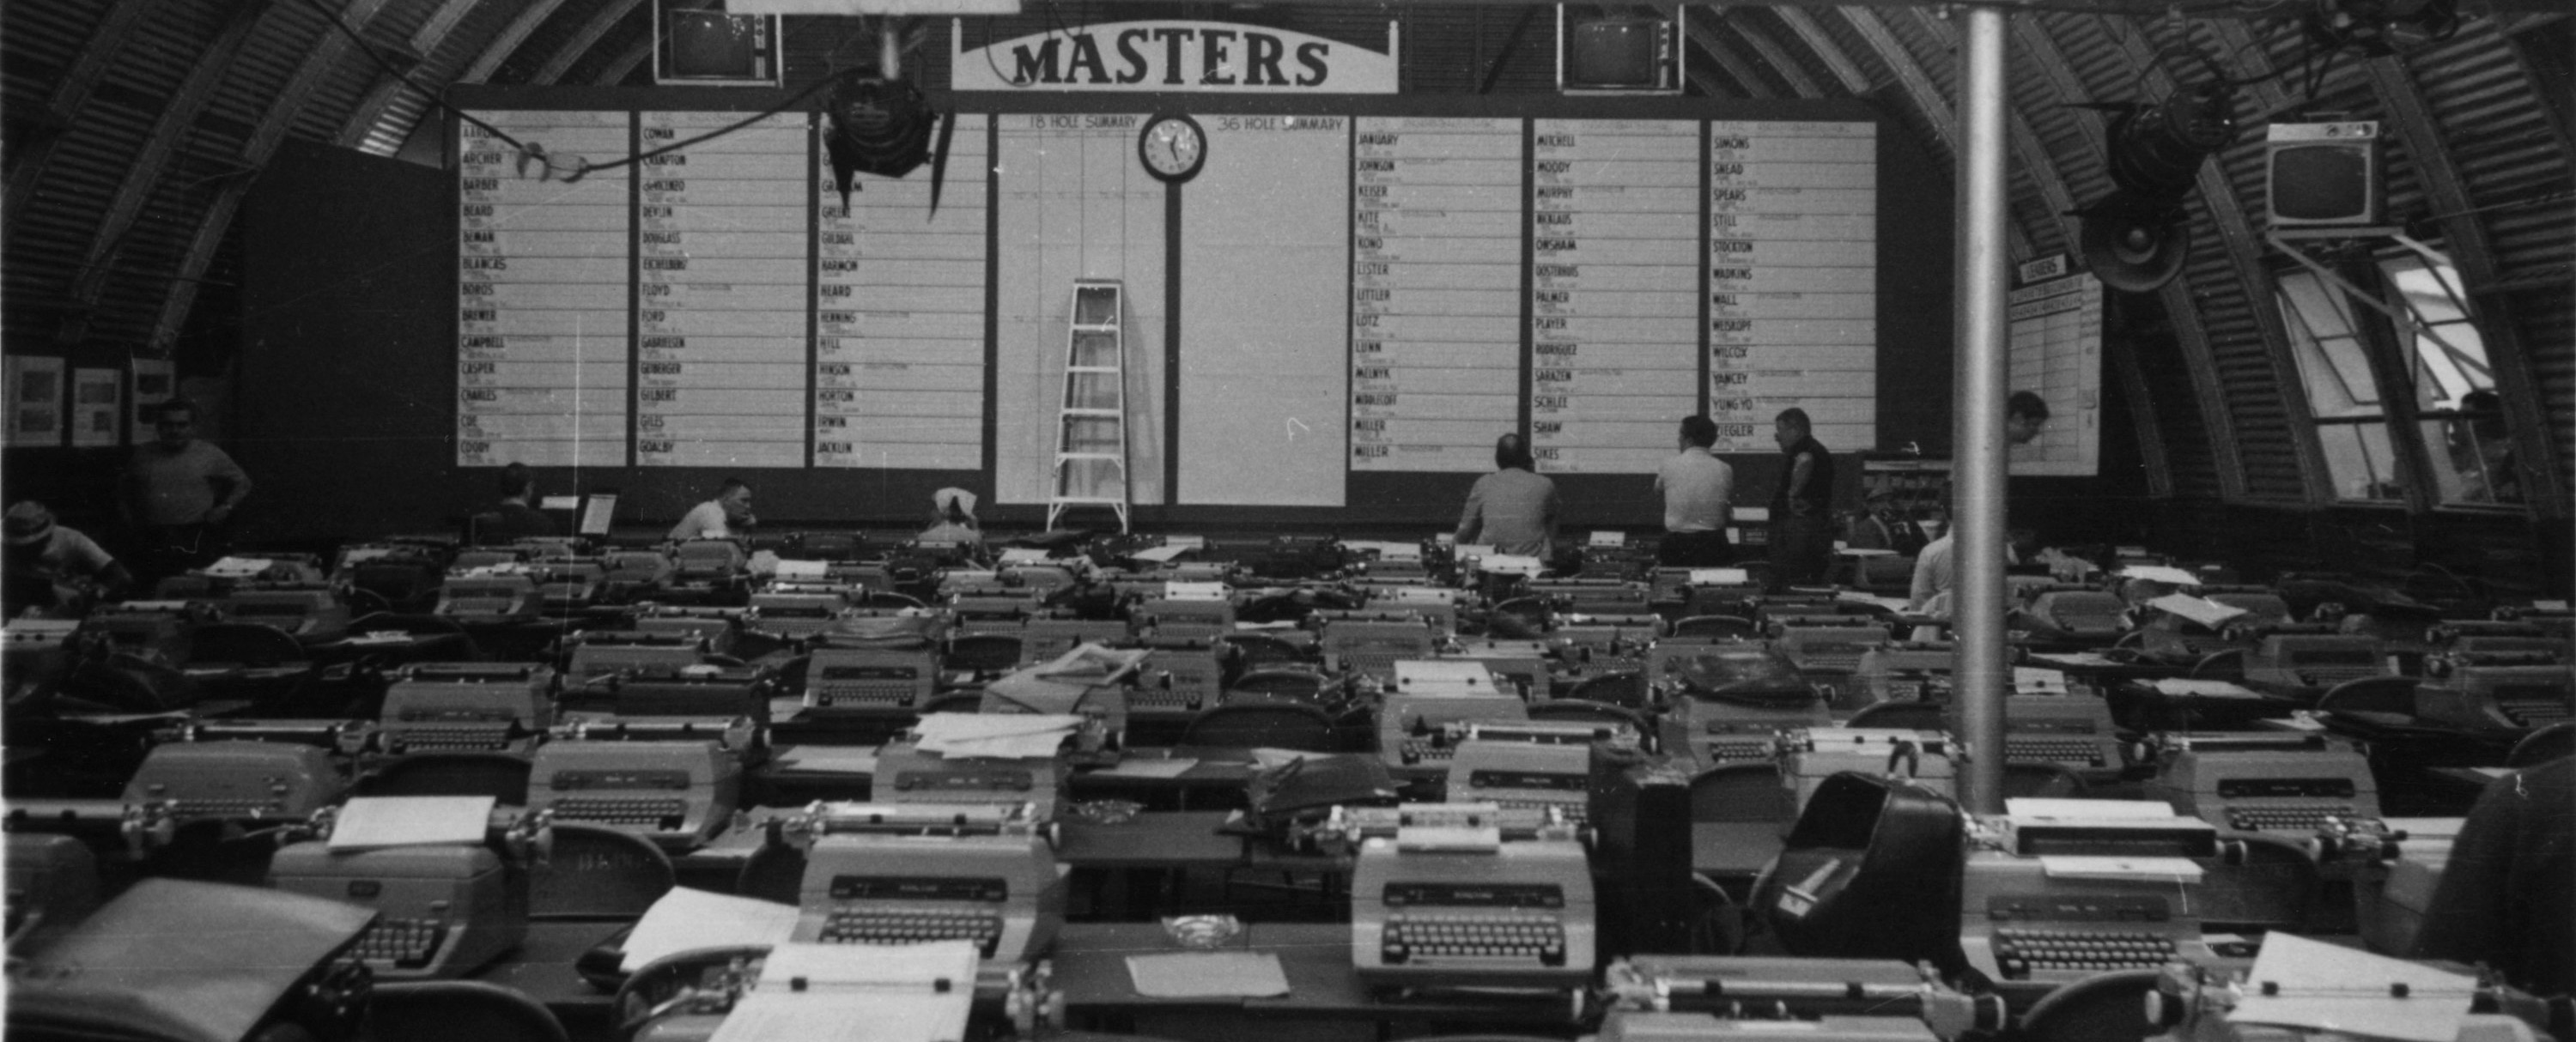 General View Of The Press Building During The Setup Of The 1971 Masters Tournament